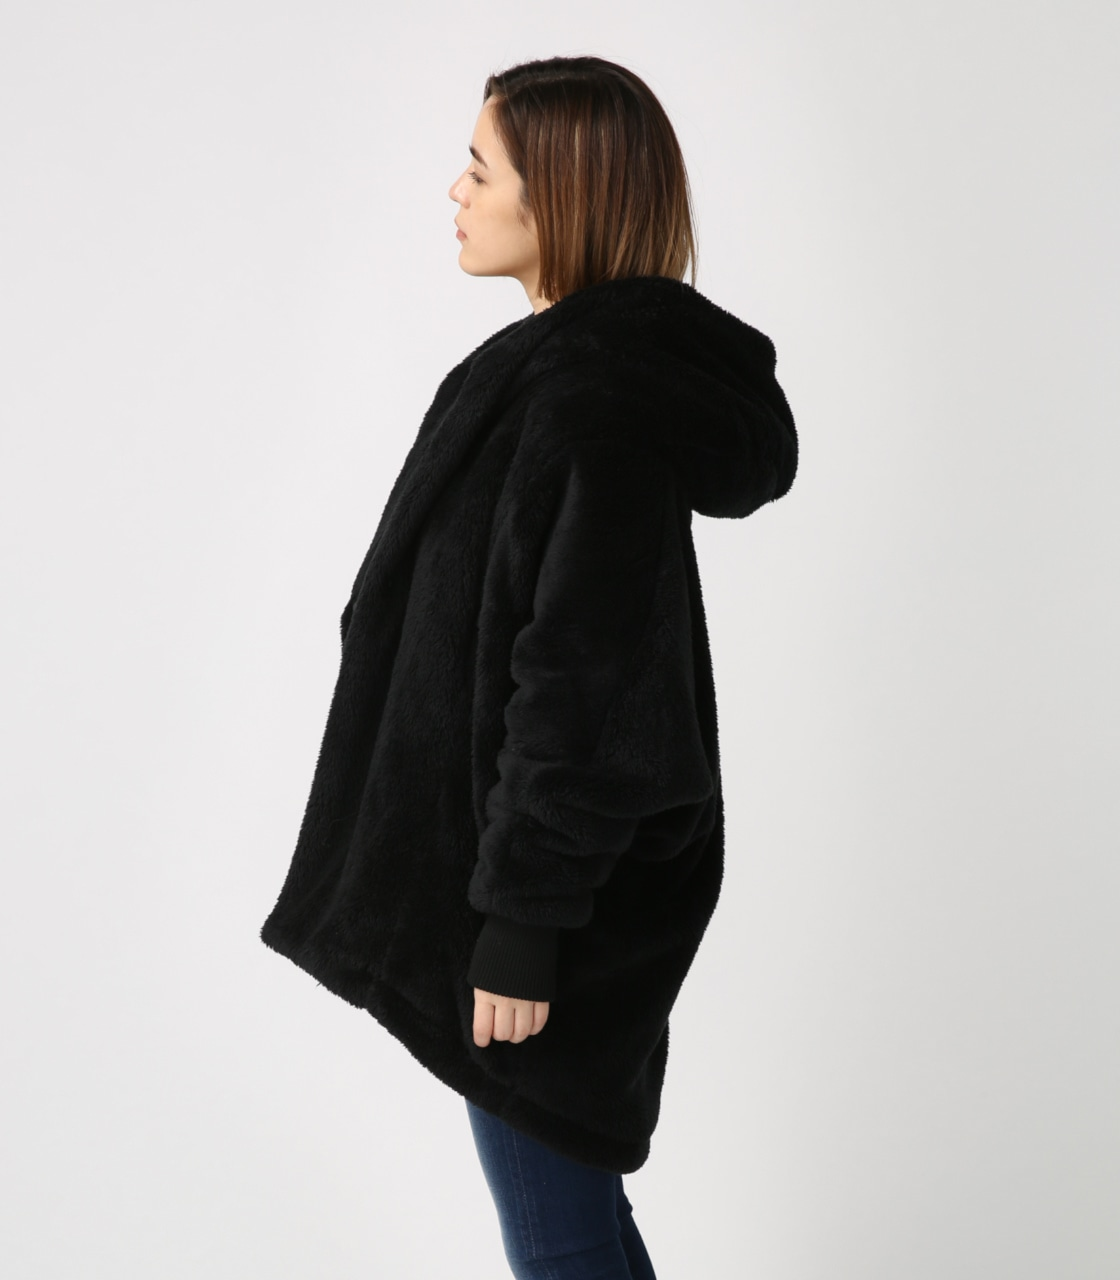 【AZUL BY MOUSSY】ボアショールカラーロングコート【MOOK44掲載 99031】 詳細画像 BLK 6